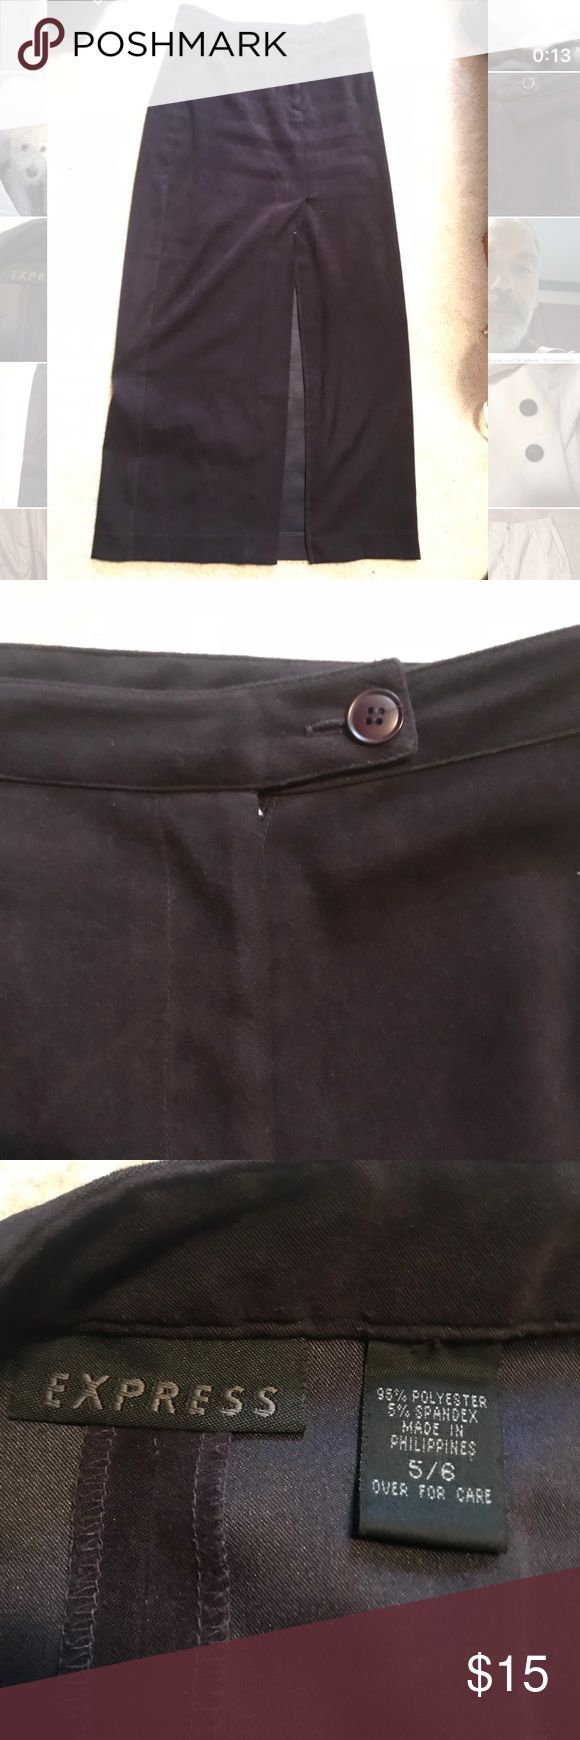 Women's Purple Express Purple Velvet Skirt Like new, no flaws. Purple maxi skirt with a slit on the side Express Skirts Maxi